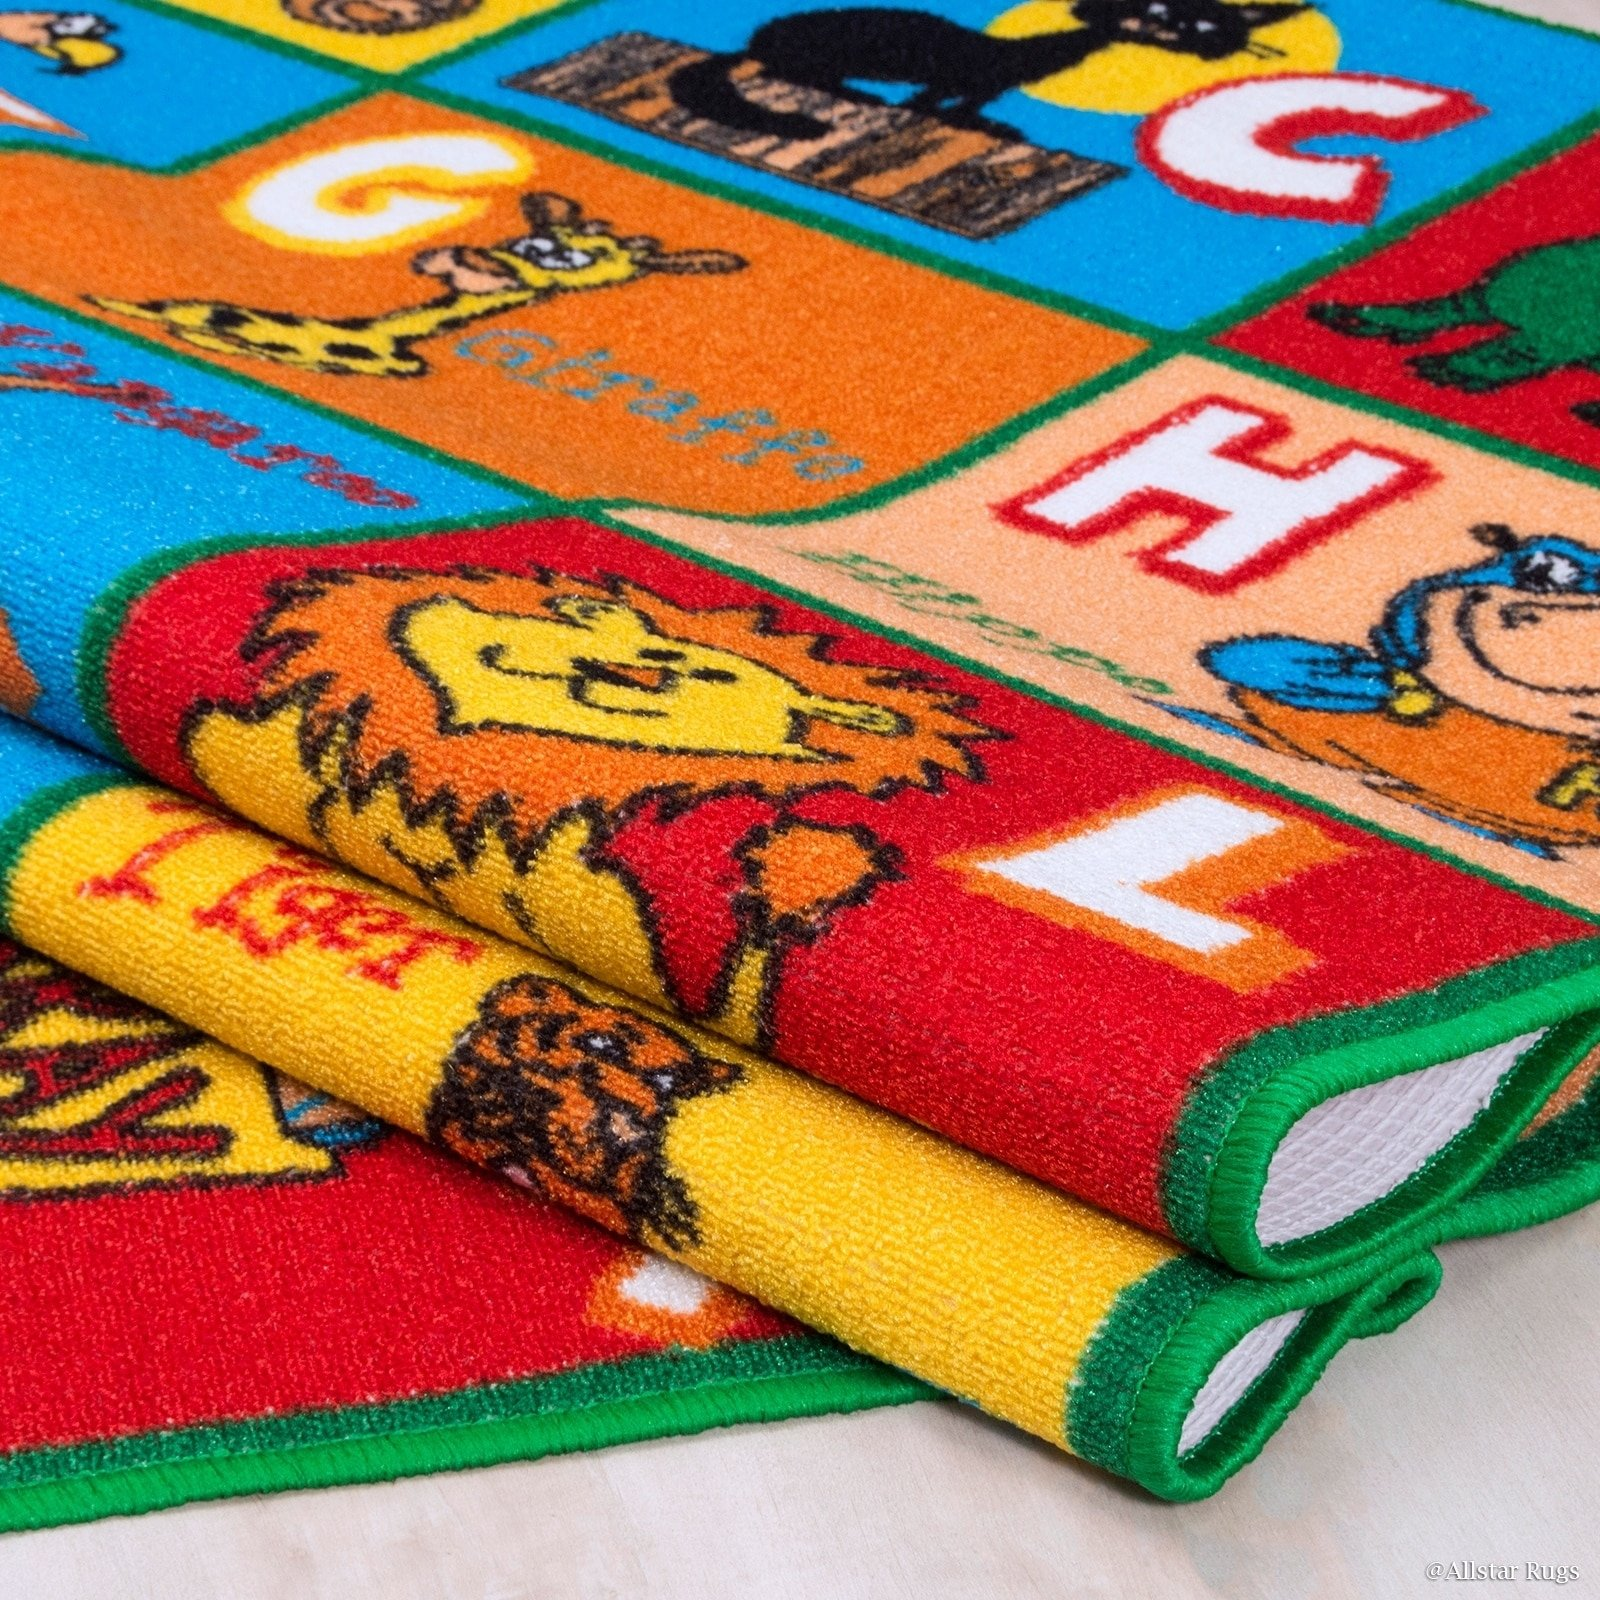 JA 4'11'' x6'11 ft Multi Colored Red Blue Yellow Orange Green White Abstract Patterned Kids Area Rug, Indoor Artistic Alphabet Letters Girl Boy Nursery Room Mat Rectangle Carpet, Animal Nylon Flooring by JA (Image #3)